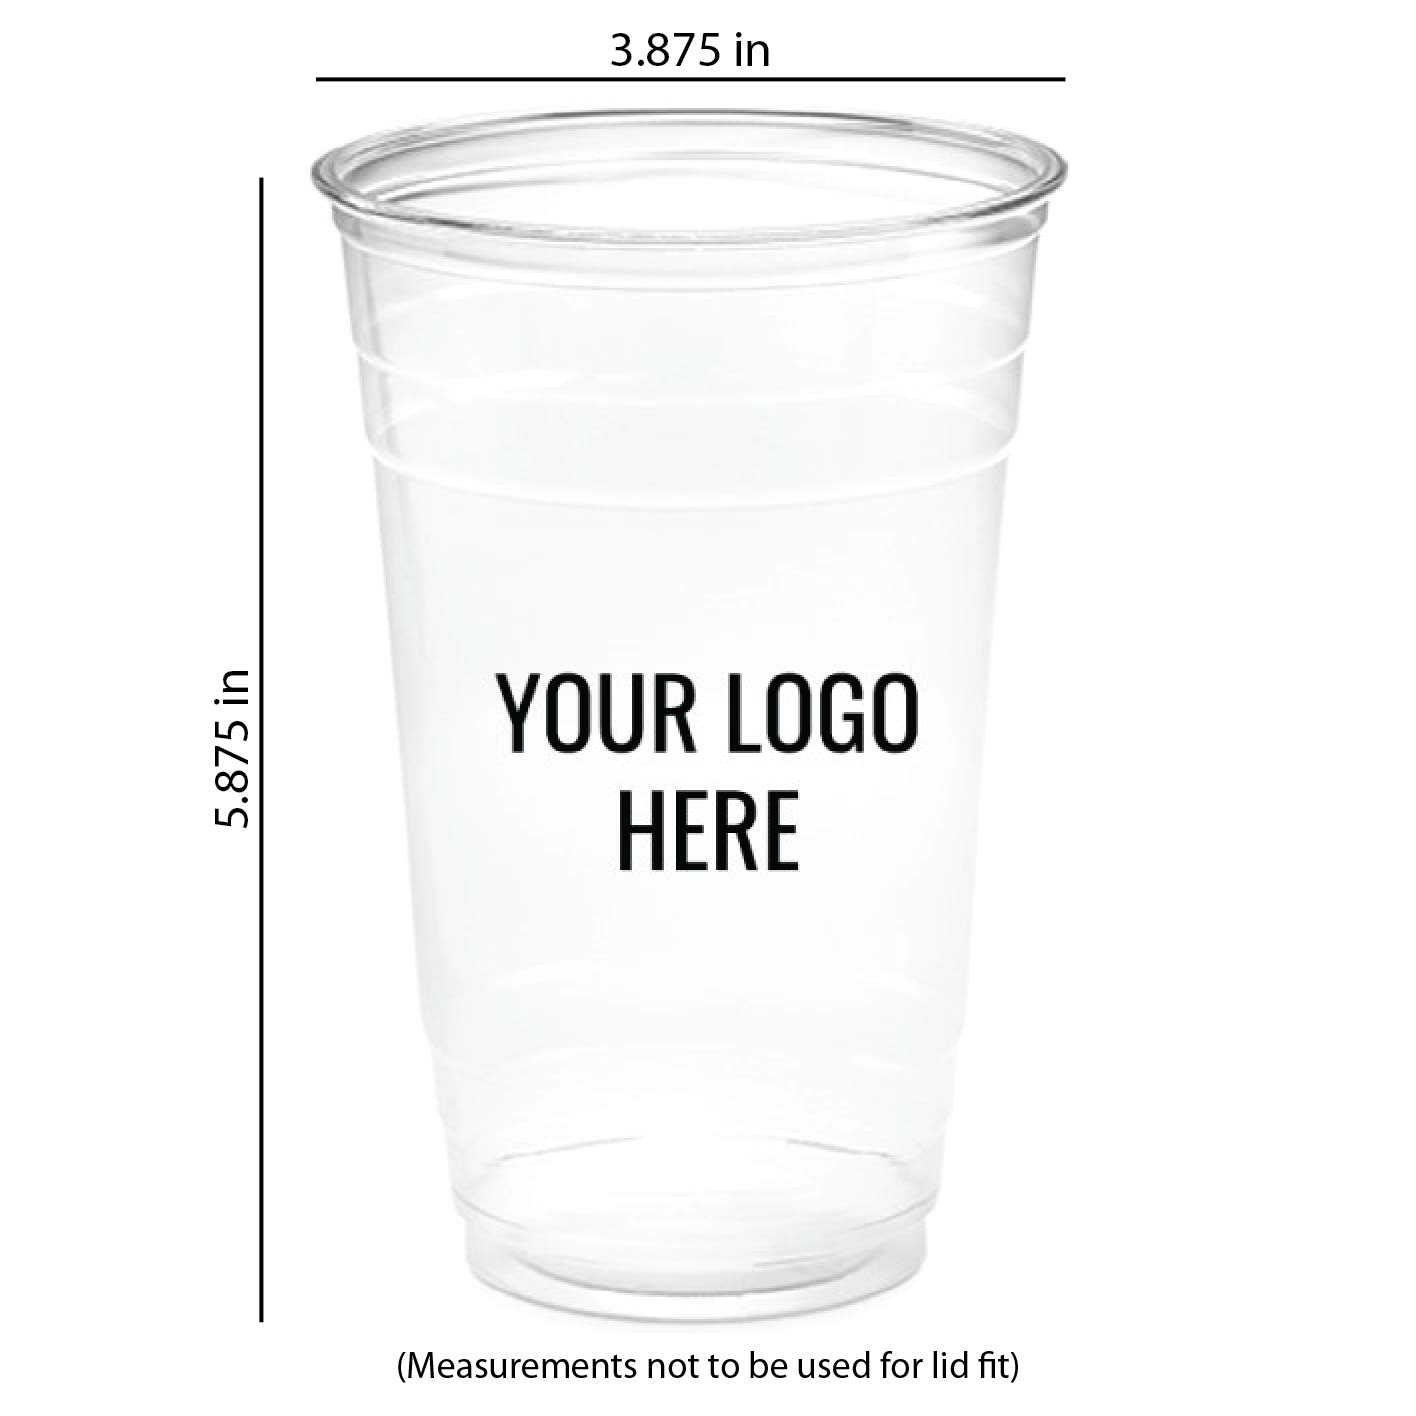 24 oz. Custom Printed Recyclable Plastic